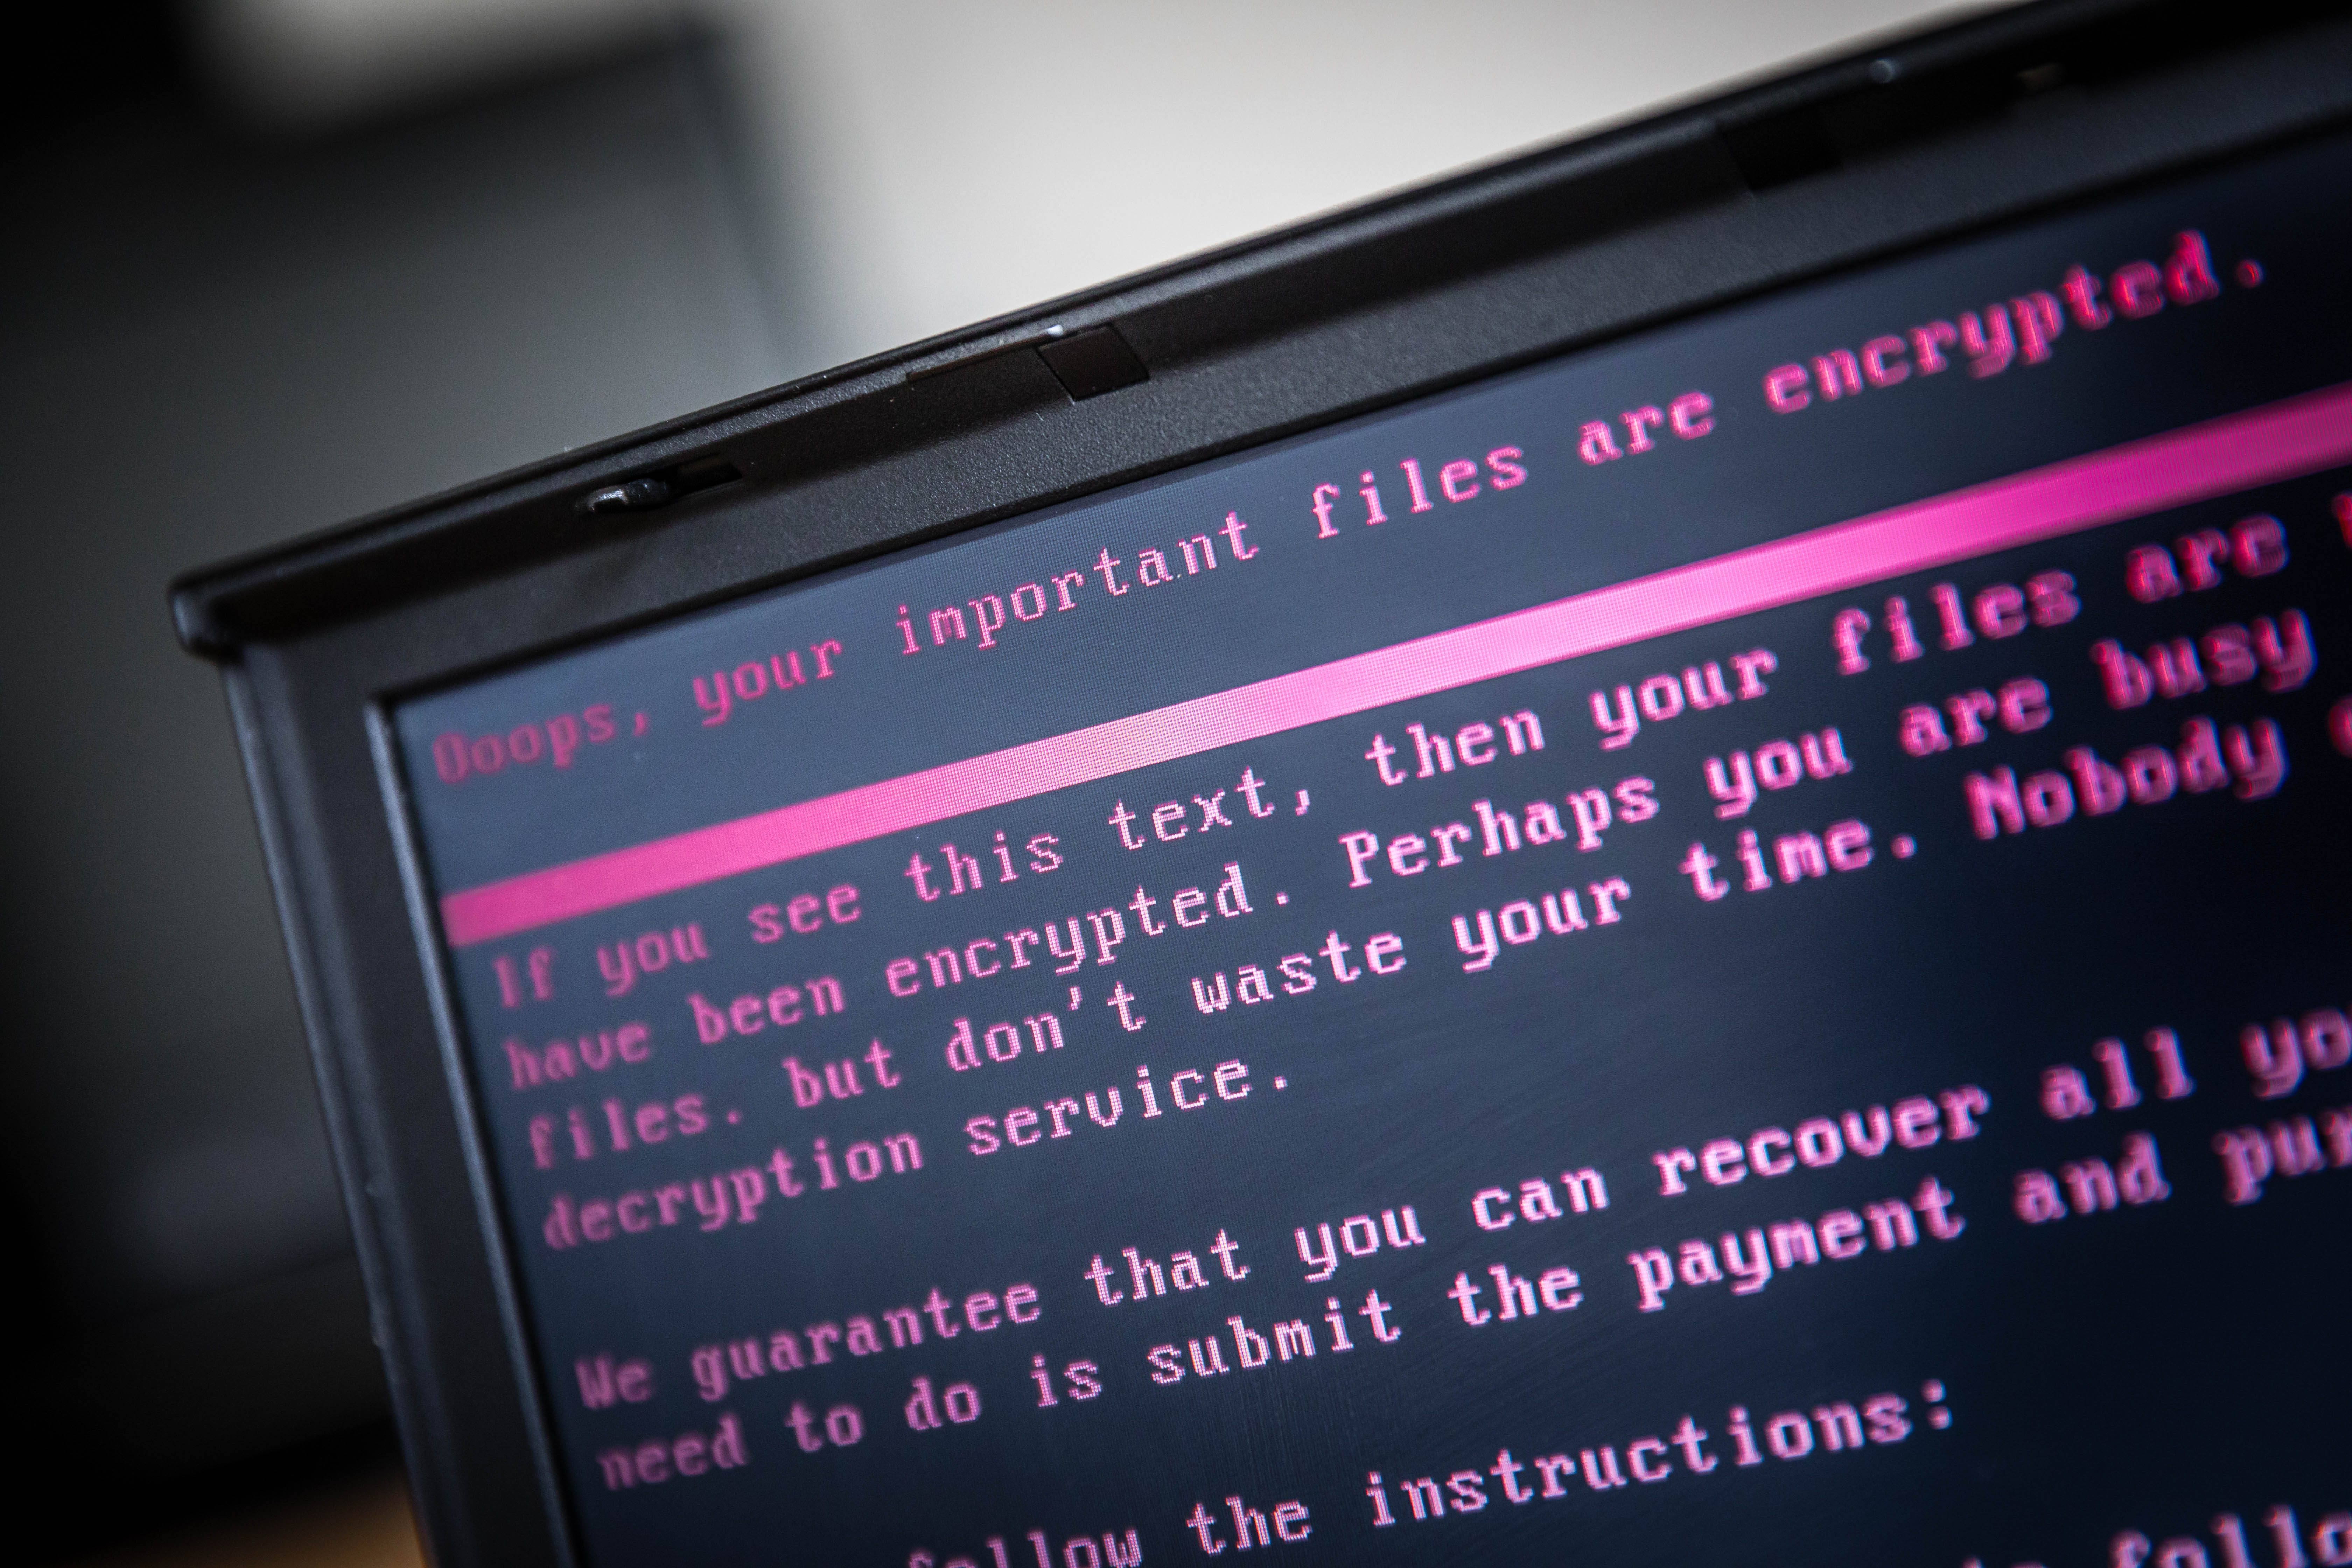 A laptop displays a message after being infected by ransomware as part of a worldwide cyberattack on June 27, 2017 in Geldrop, Netherlands.